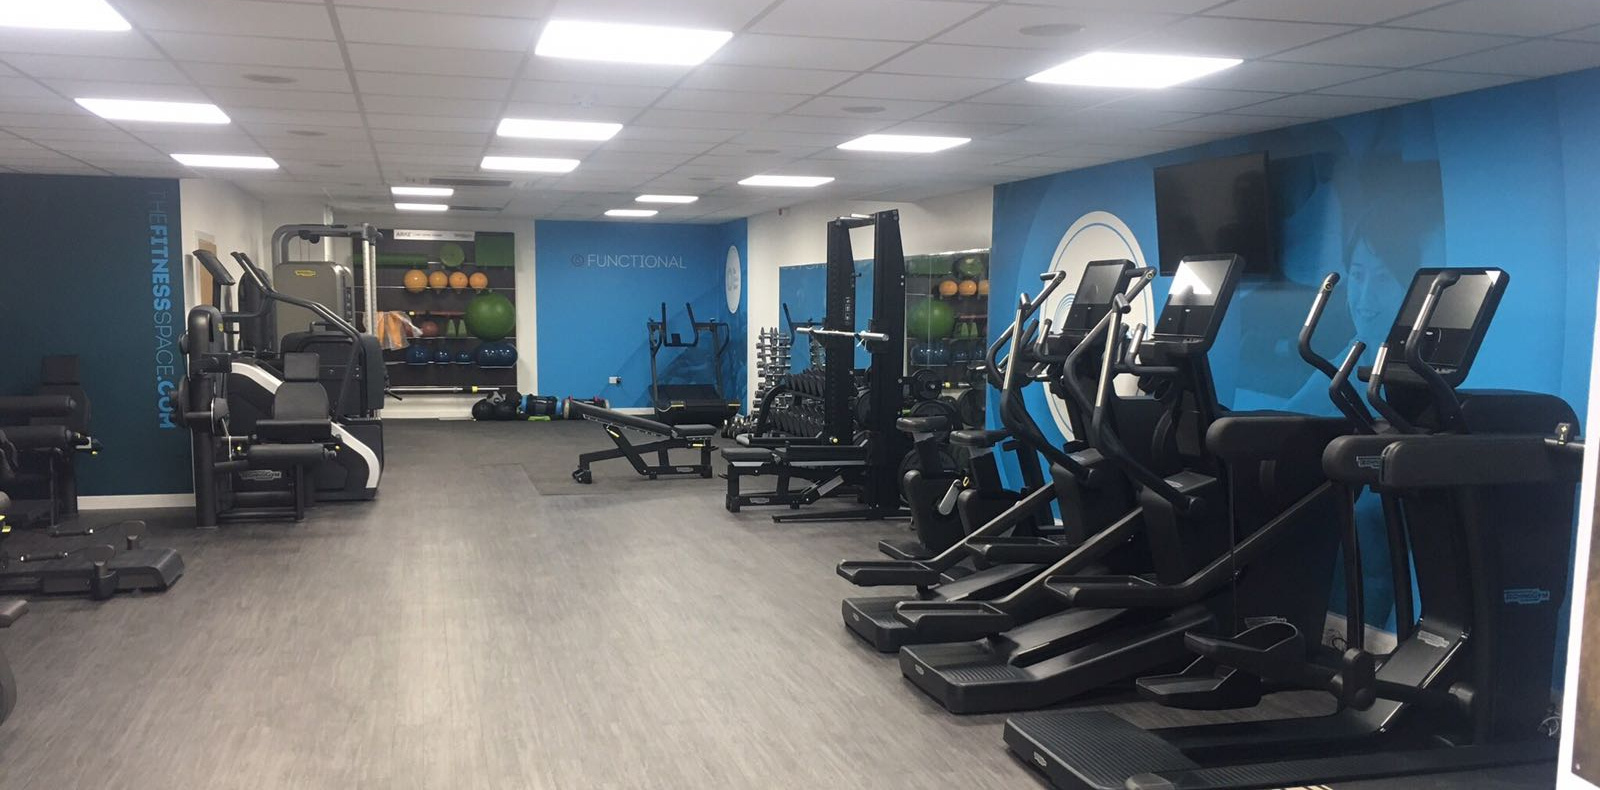 Fitness Gyms In Leamington Spa